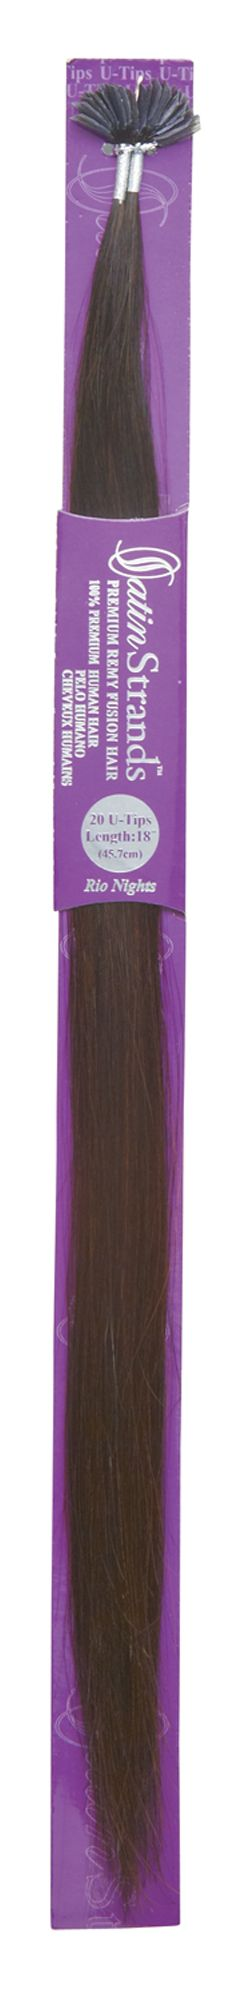 Satin Strands Premium 100% Remy Human Hair U-Tip Fusion Hair Extensions Rio Nights